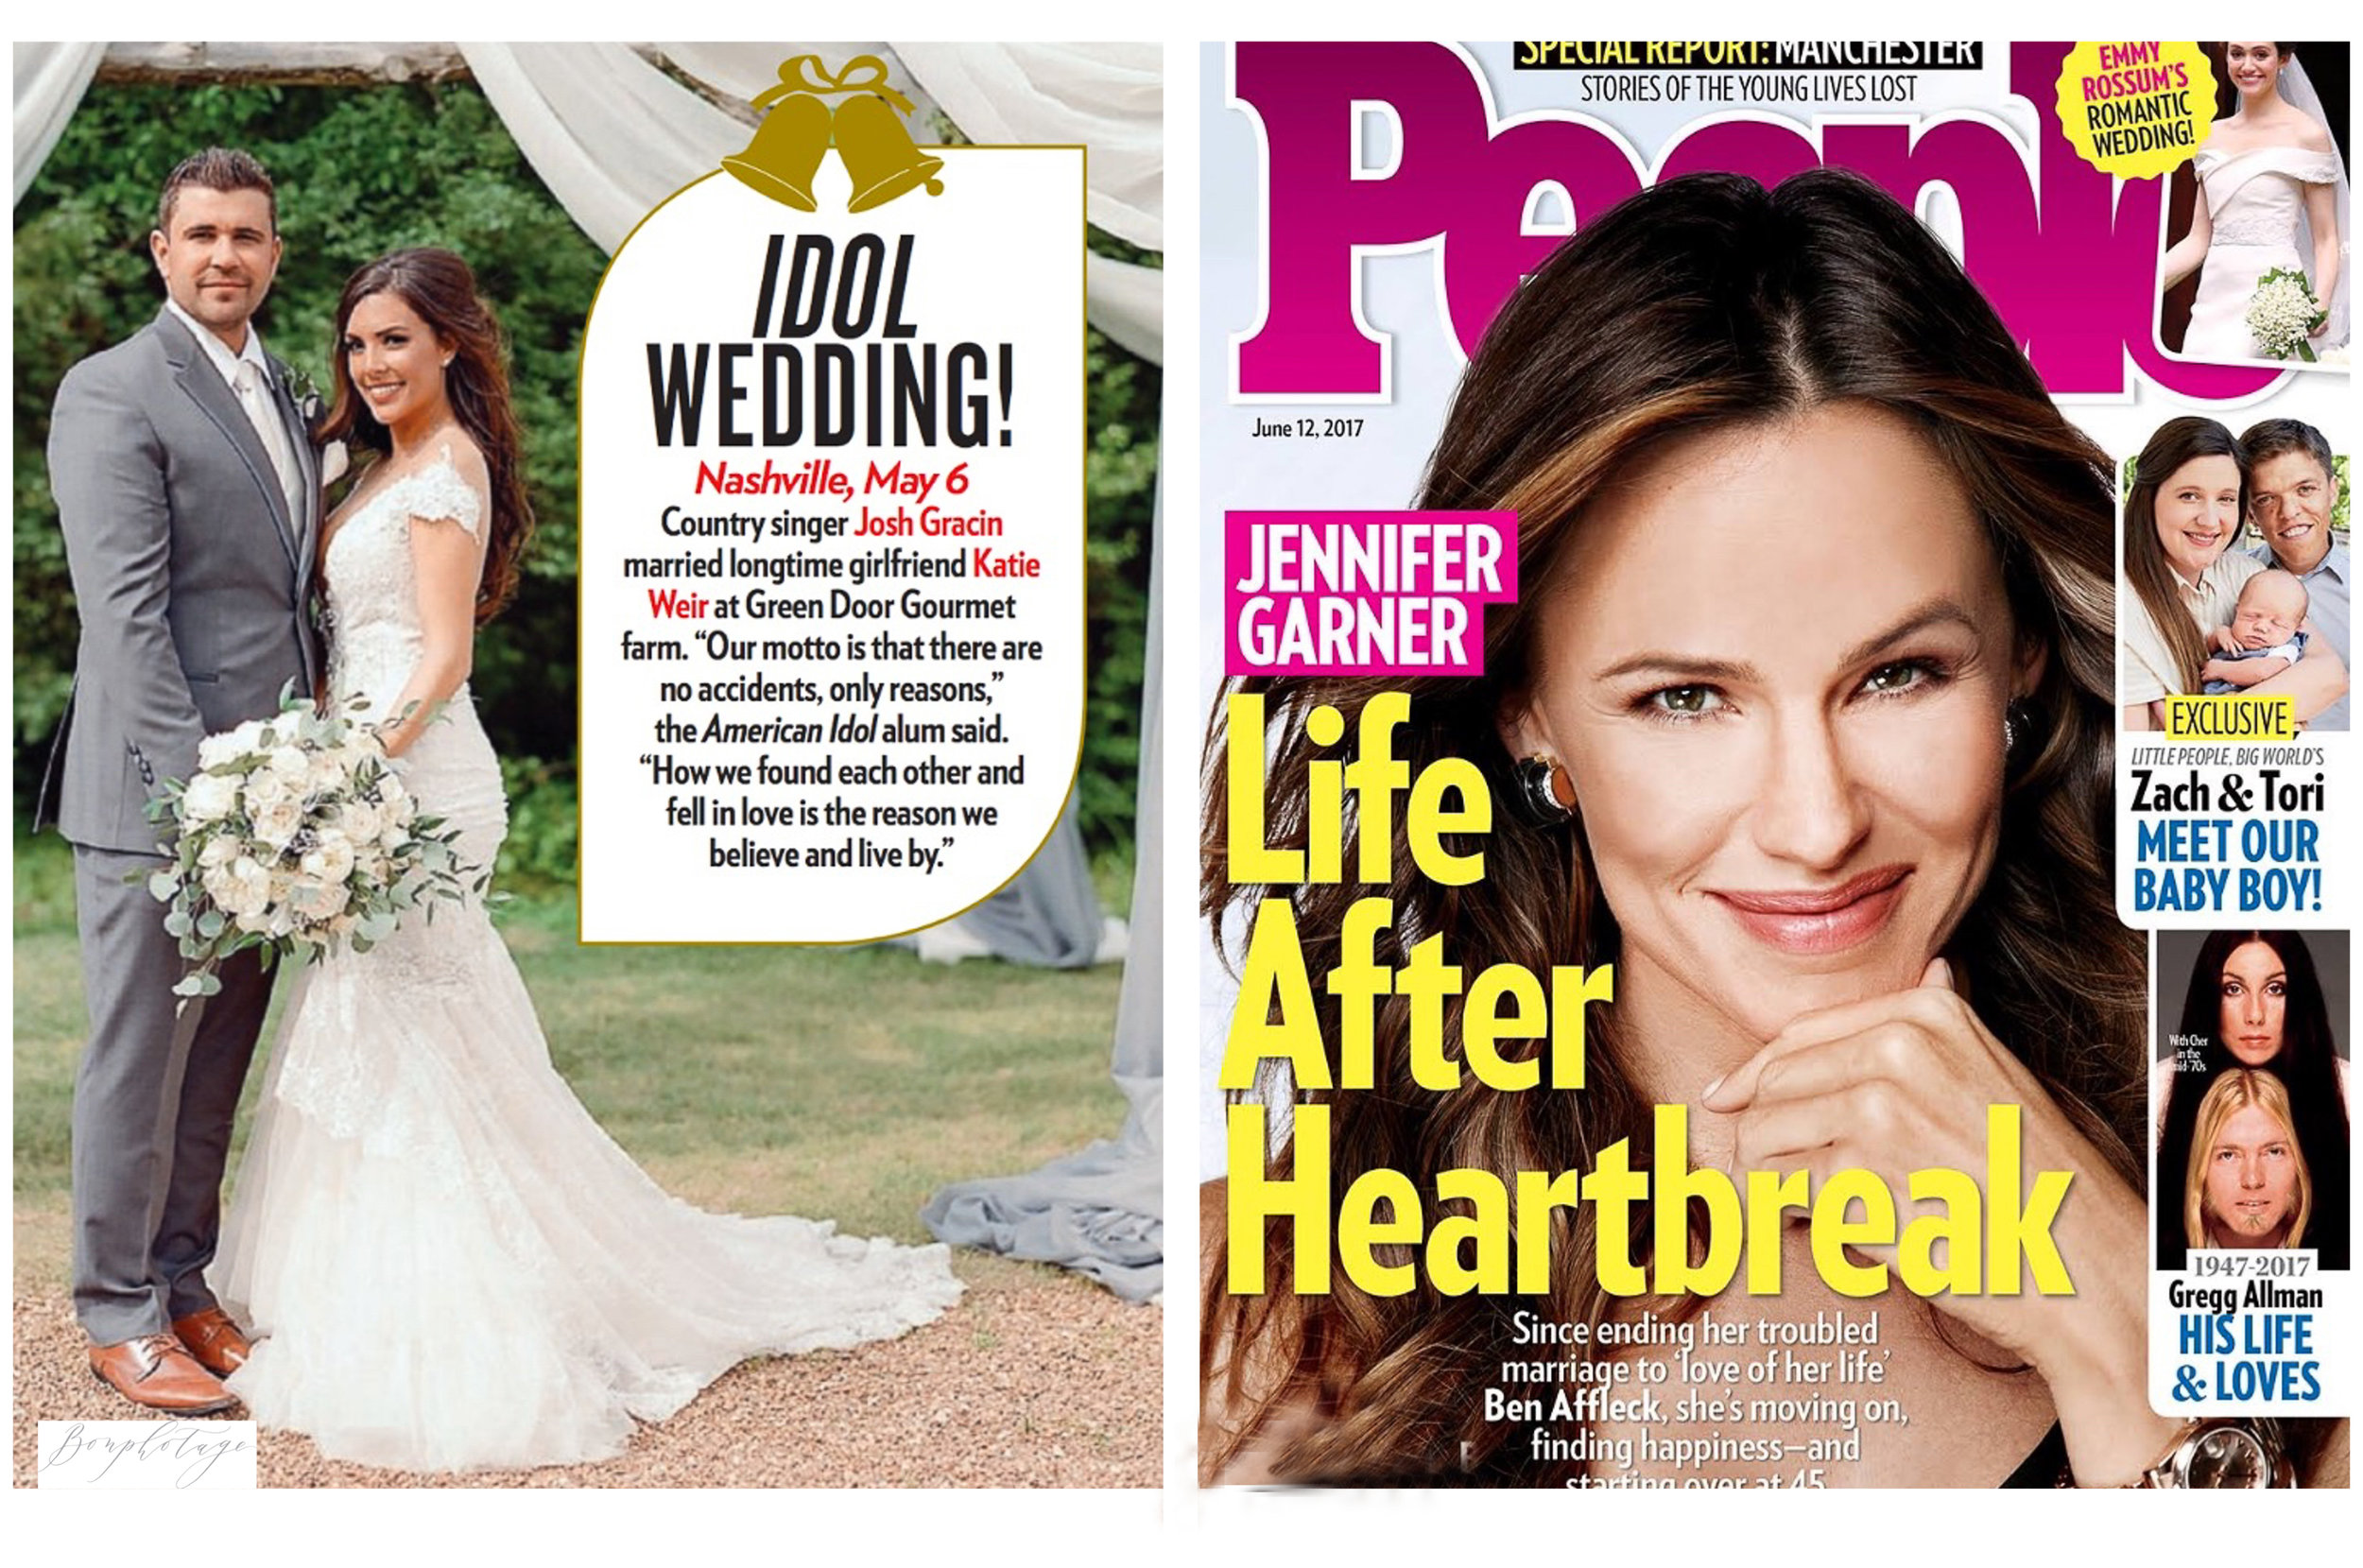 bonphotage featured in people magazine